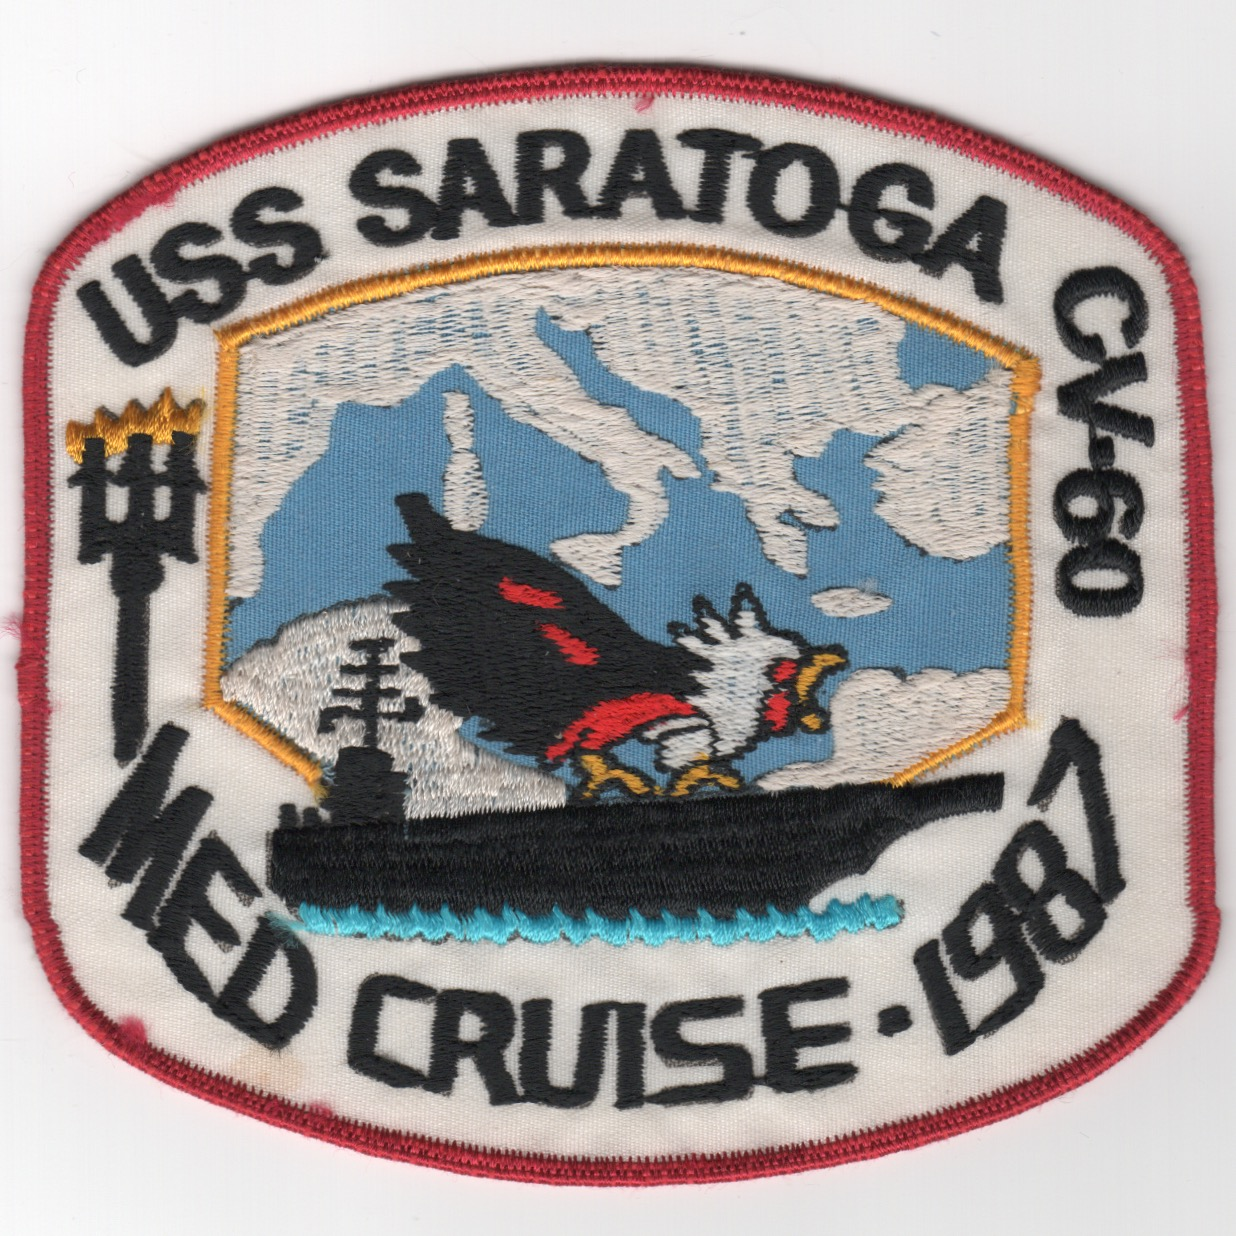 402) CV-60 1987 Med Cruise Patch